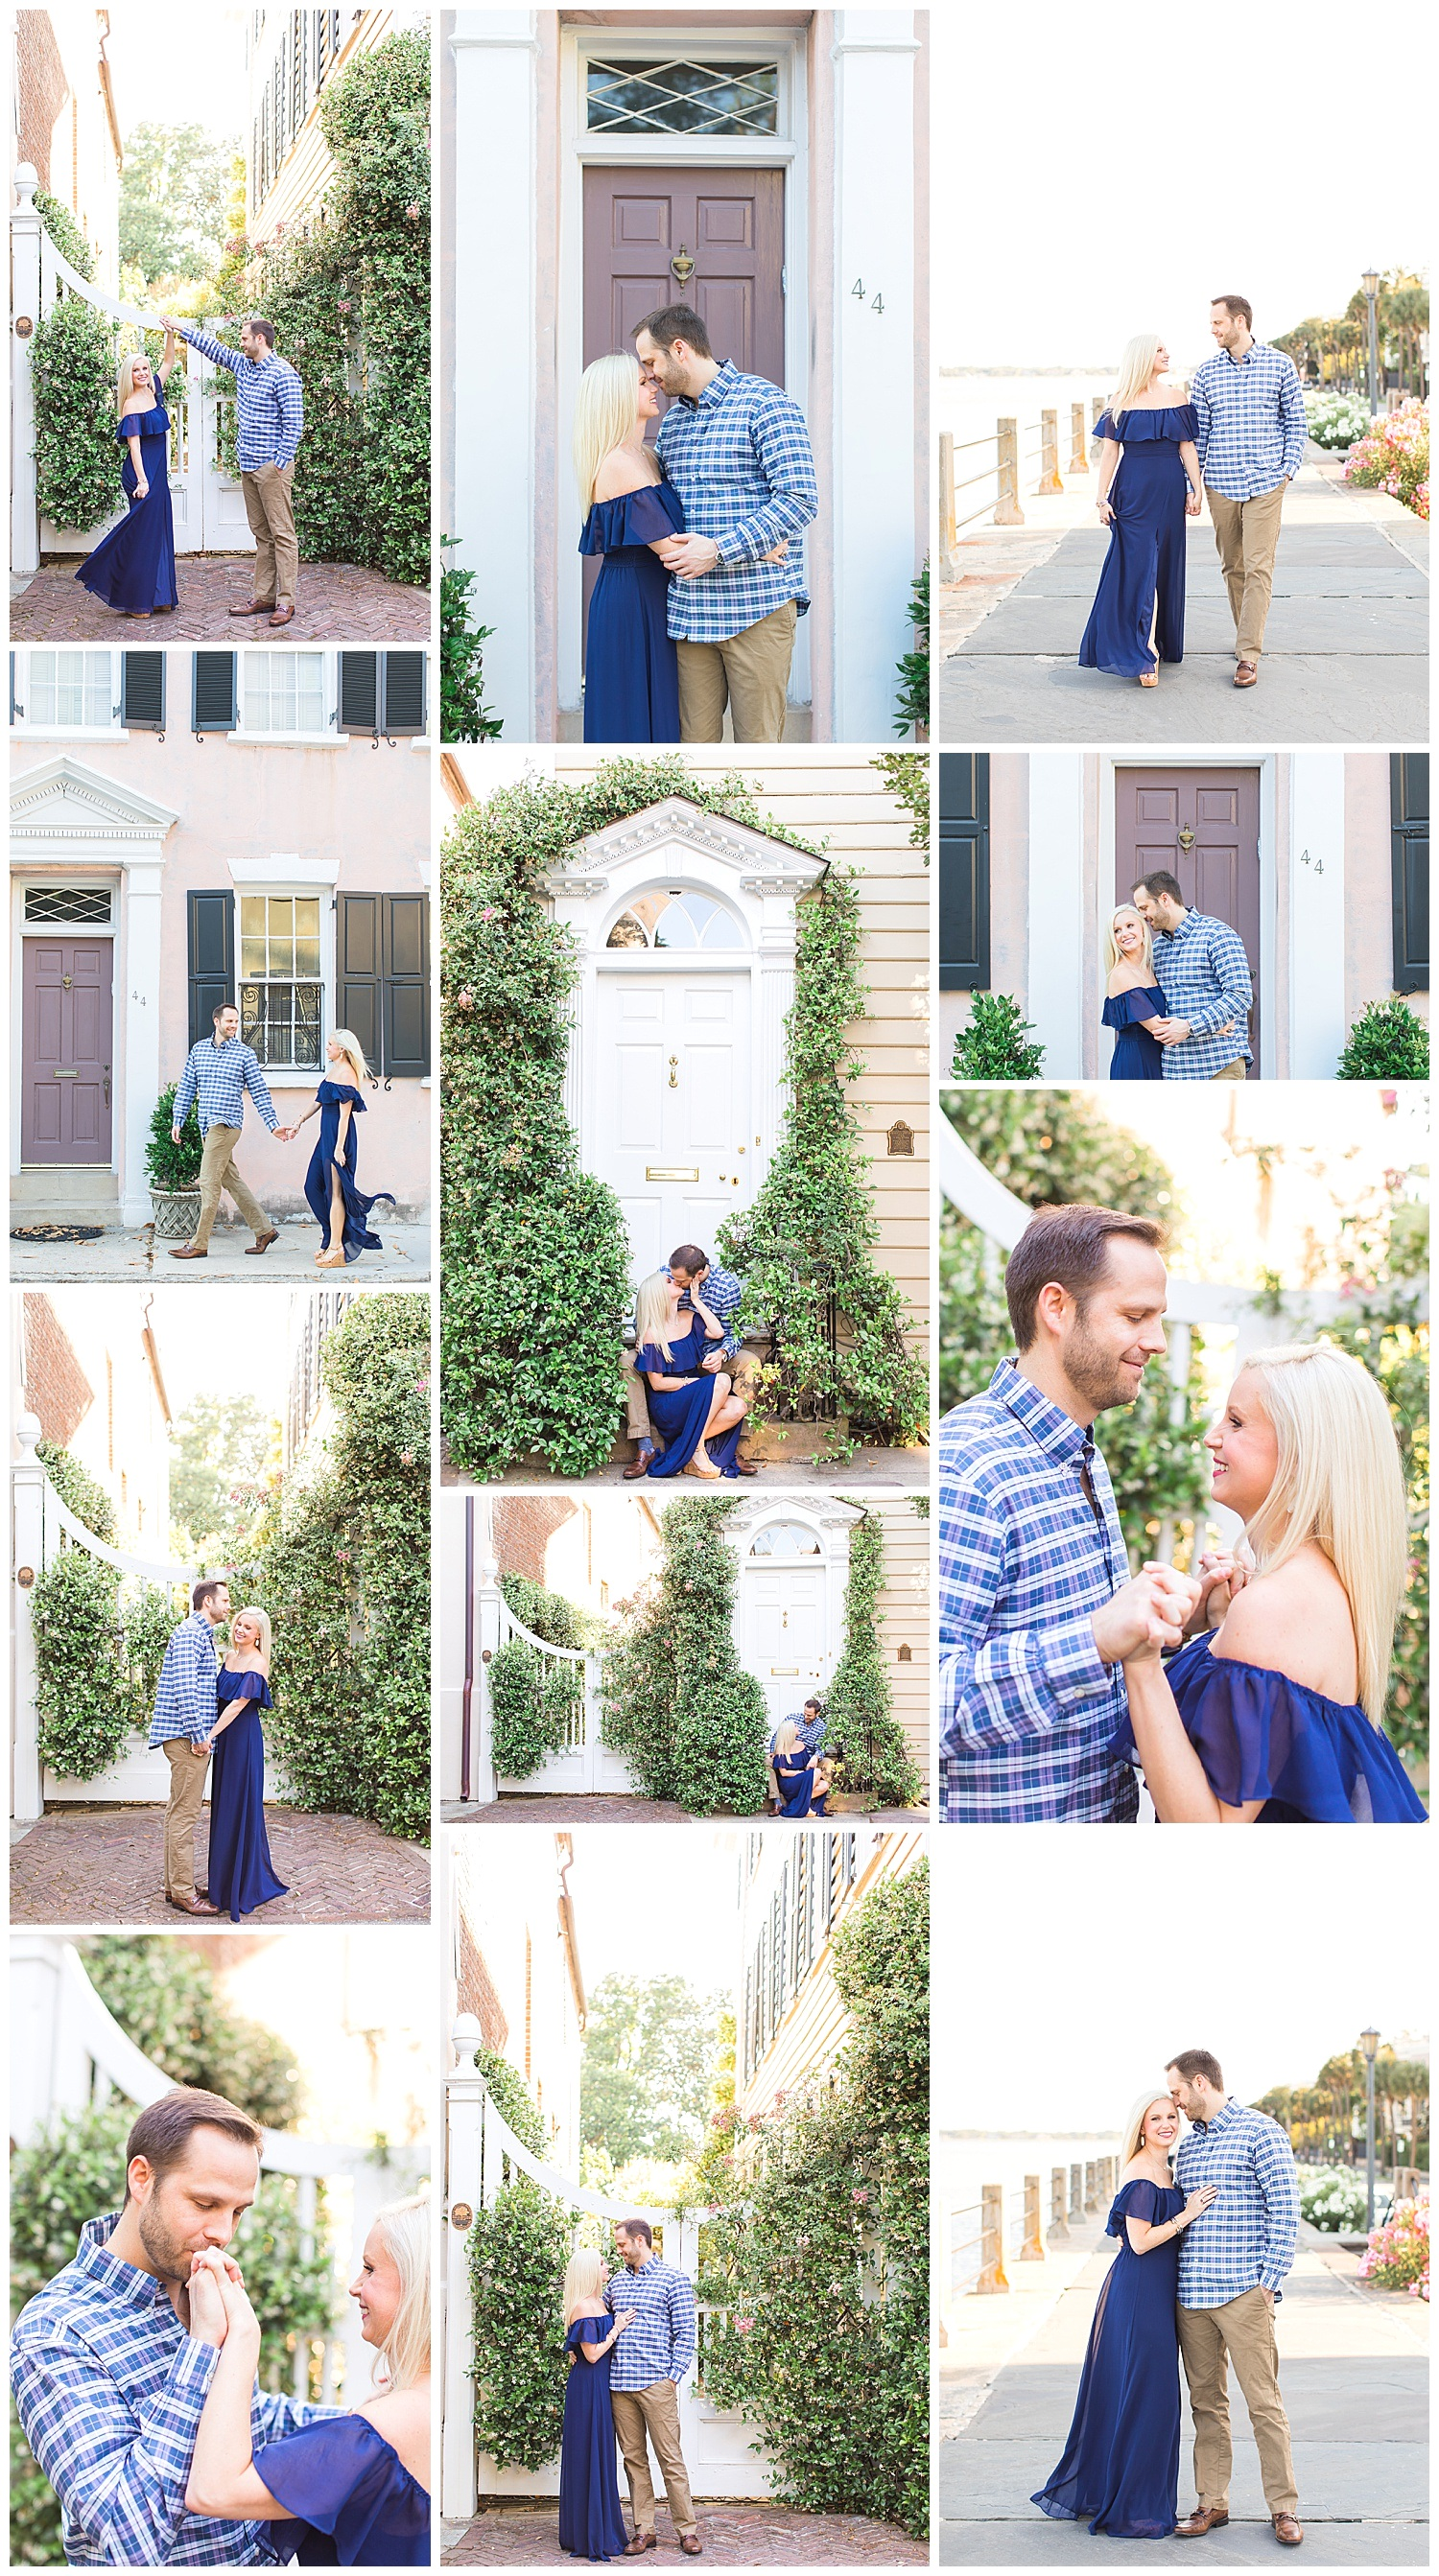 downtown-charleston-rainbow-row-engagement-kailee-dimeglio-photography-3.jpg